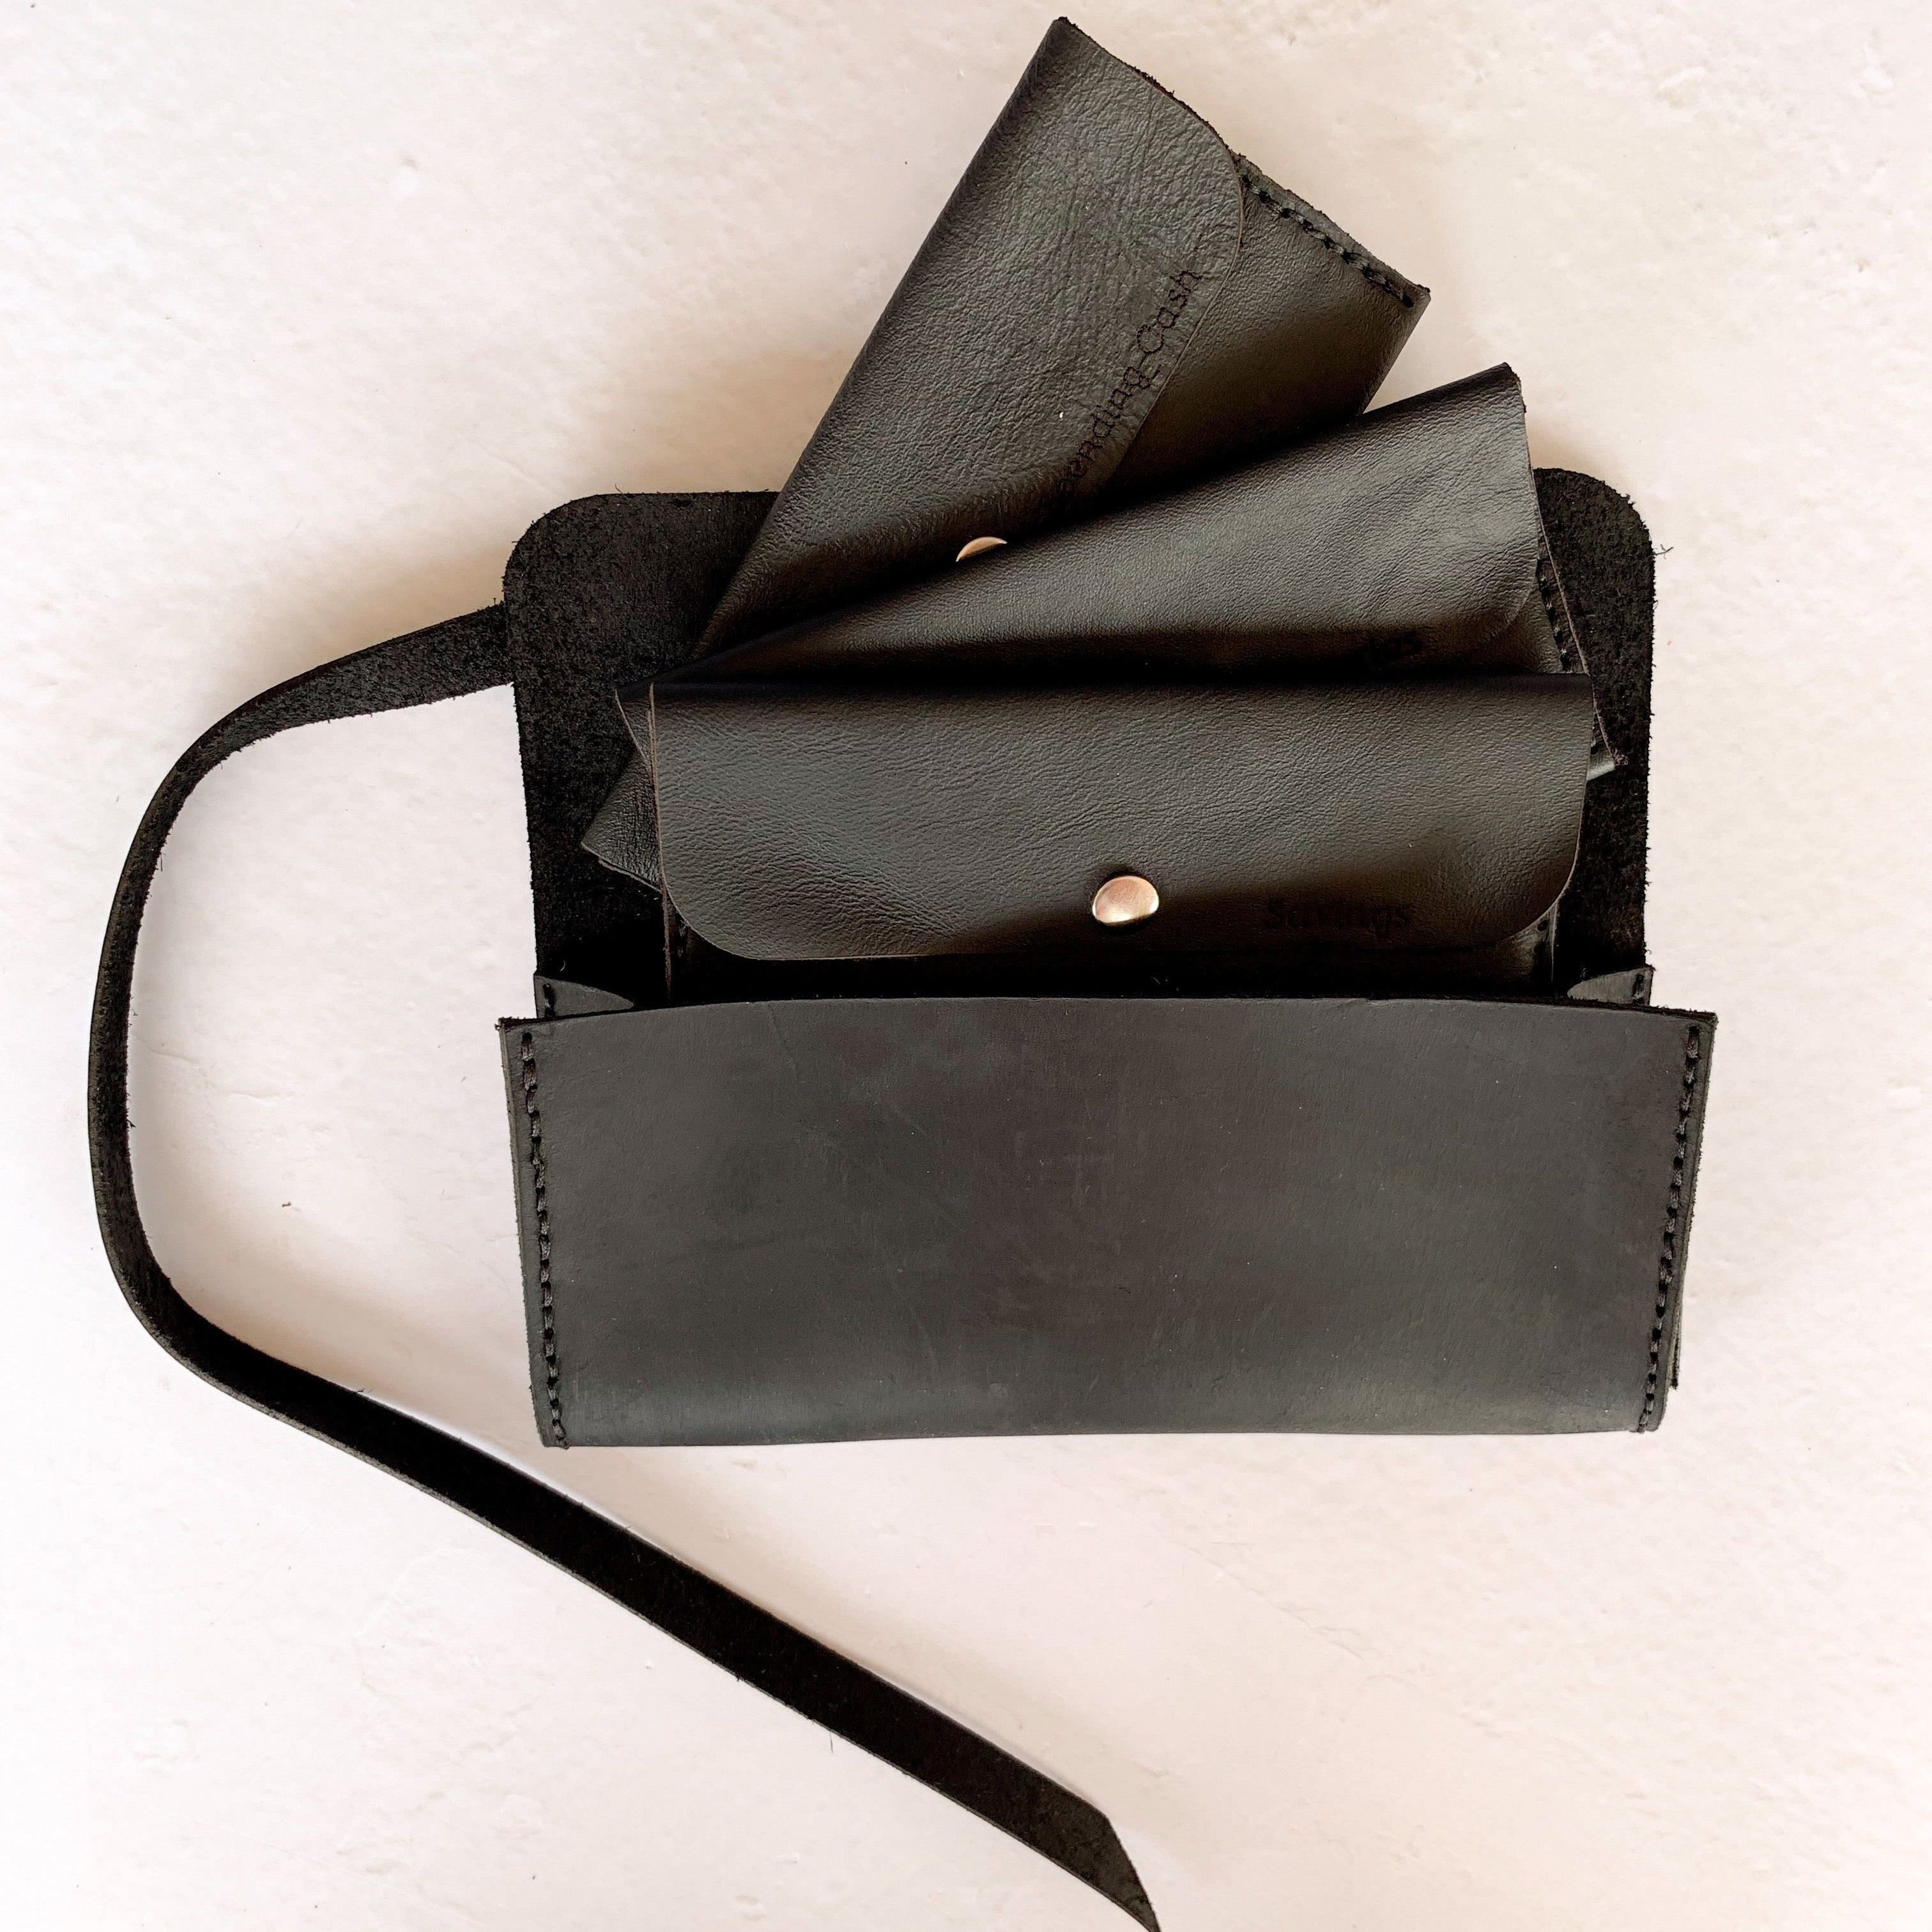 5 Cash Leather Envelope System in a Straight Edge Finish & Clutch